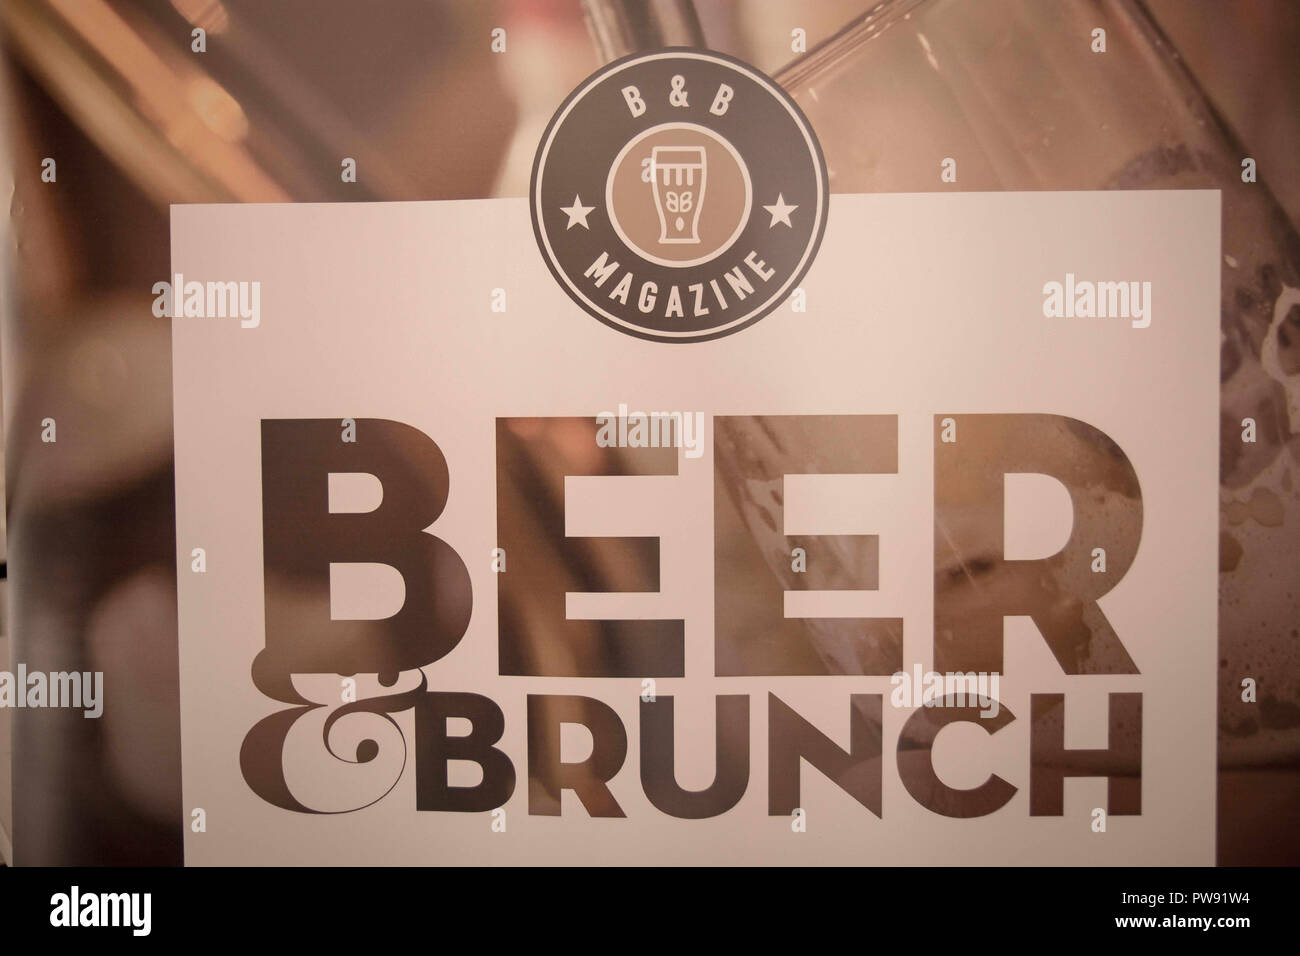 Athens, Greece. 13th Oct, 2018. An exhibition logo saying beer brunch seen during the exhibition.The 5th Zythognosia Exhibition, people get a chance during the exhibition to taste multiple brews and premium beers from different brands and companies like Levante for Zante Lager, Asylum for Asylum saison, Mikonu for Mikonu Pale Ale, Deals for Fischer, Samichlaus and Cava di patsi for Flaros Session Ale in Zappeion Megaron in Athens. Credit: Nikolas Joao Kokovlis/SOPA Images/ZUMA Wire/Alamy Live News - Stock Image